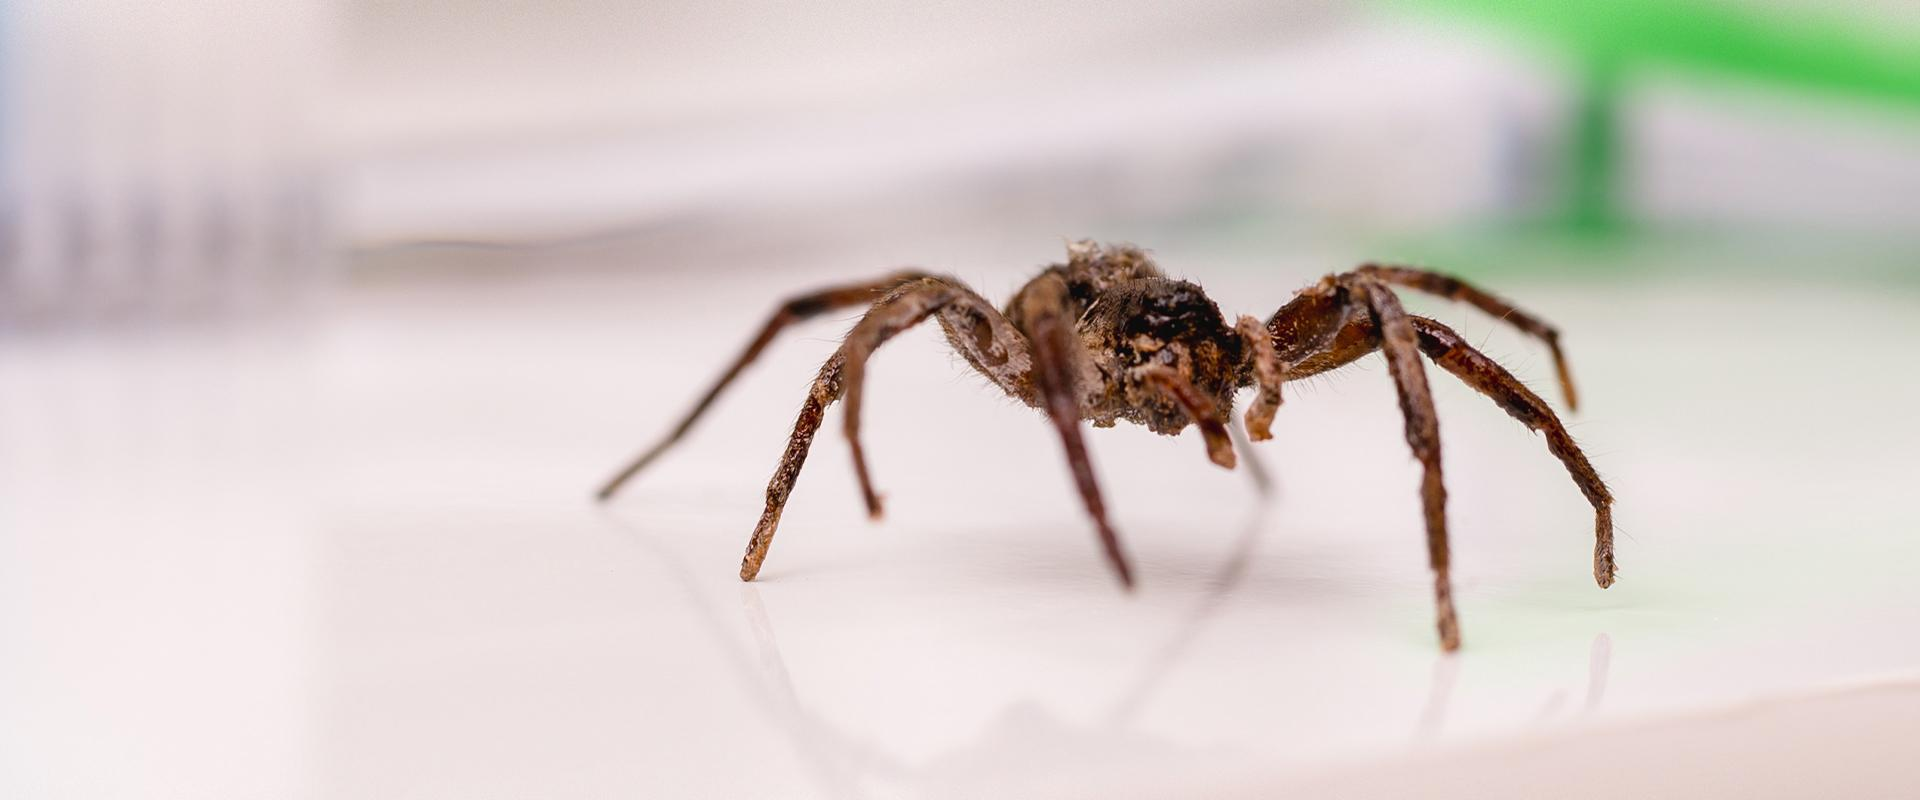 a house spider on a counter in meridian idaho